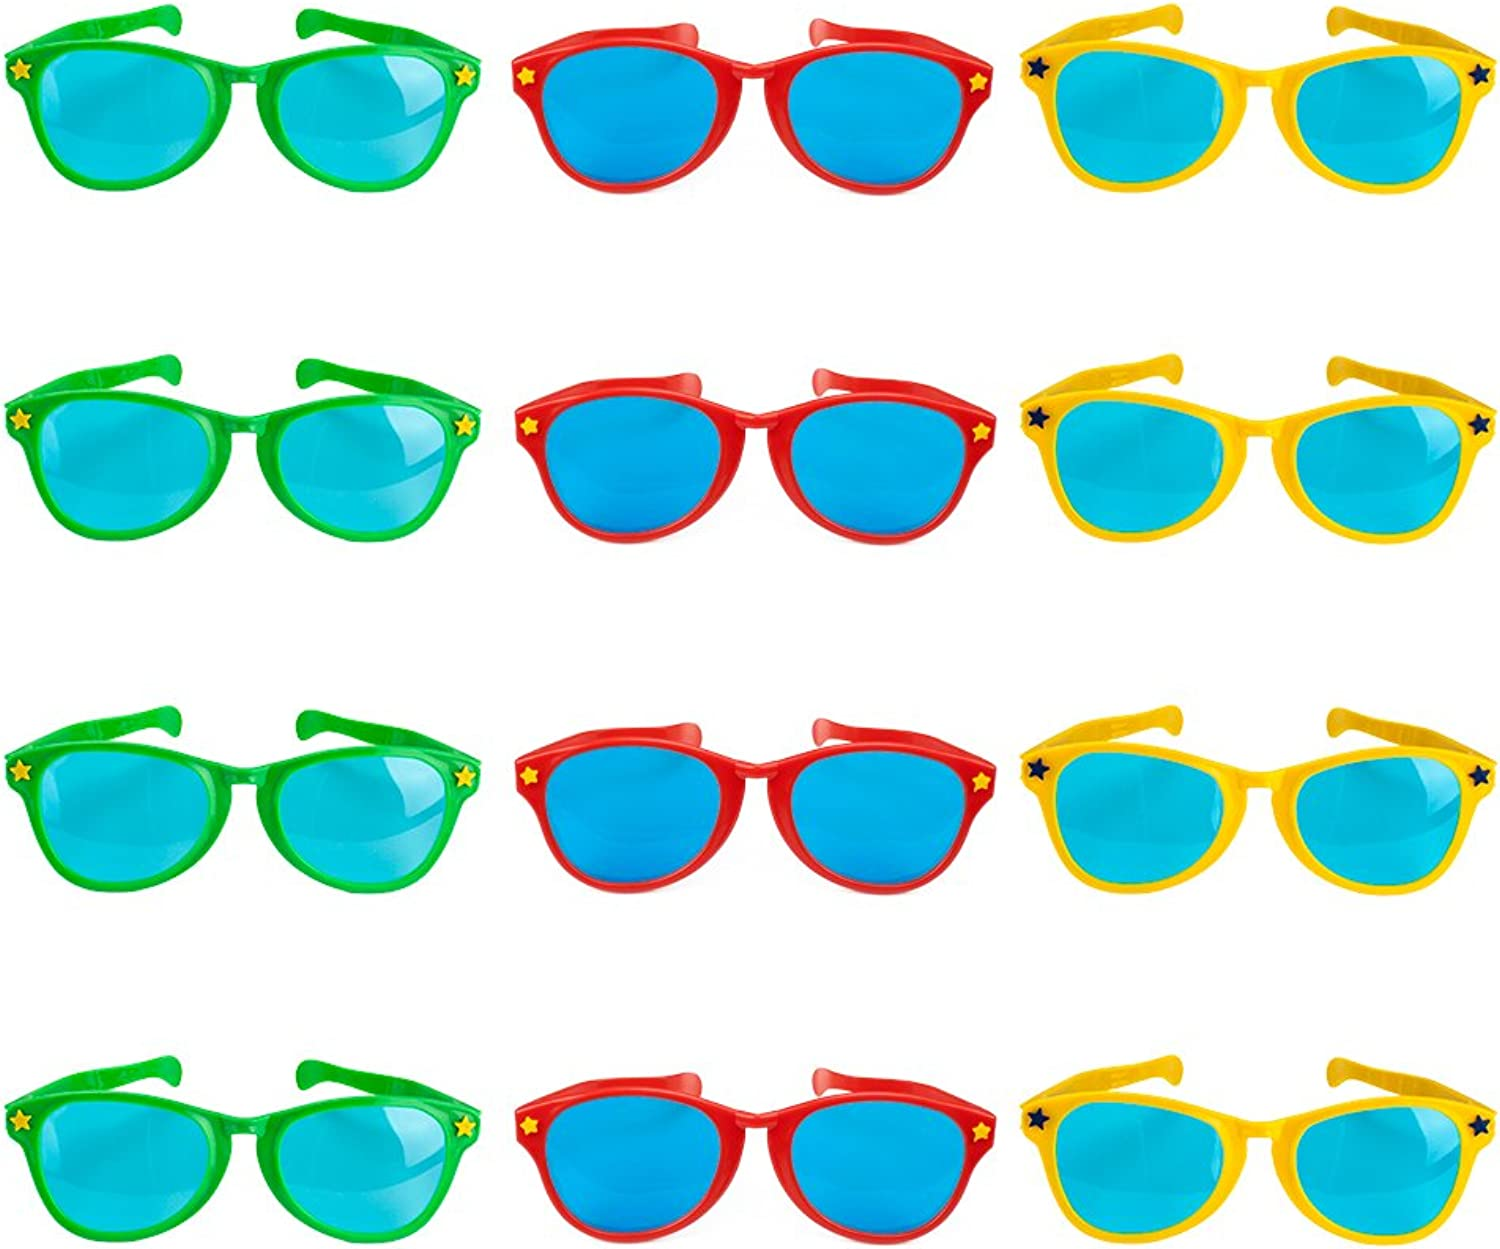 Lot of 12 11  Jumbo Sunglasses by Pudgy Pedro's Party Supplies